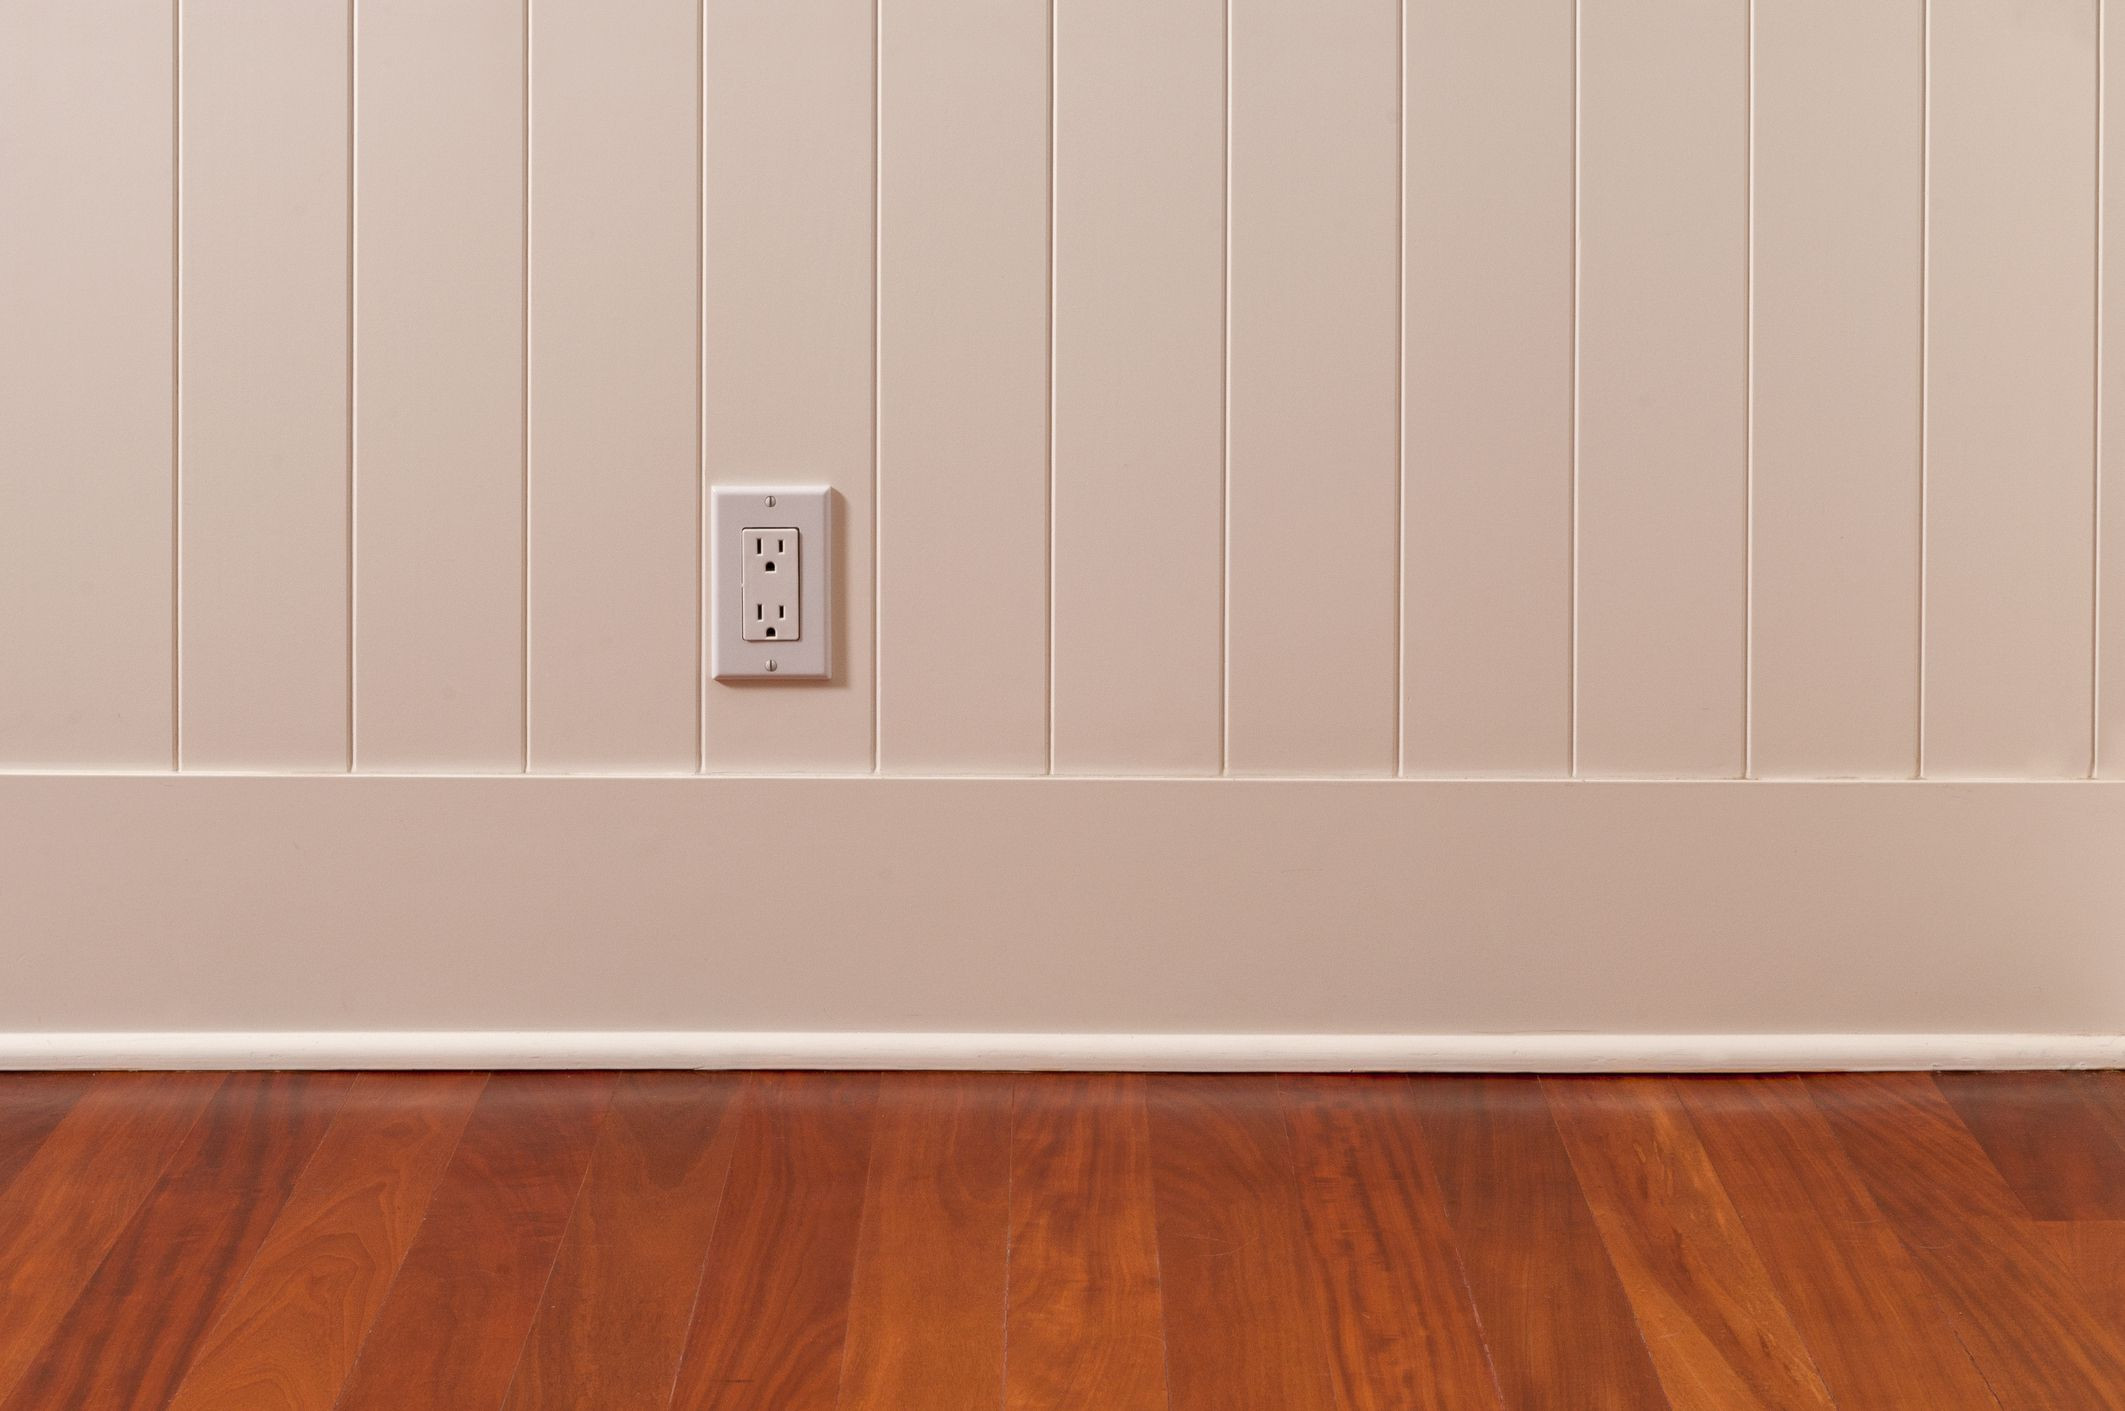 hardwood floors white trim of wood and mdf baseboards guide to purchasing and installing inside quarter round installed on baseboard 164003254 57a500d85f9b58974a84b0f6